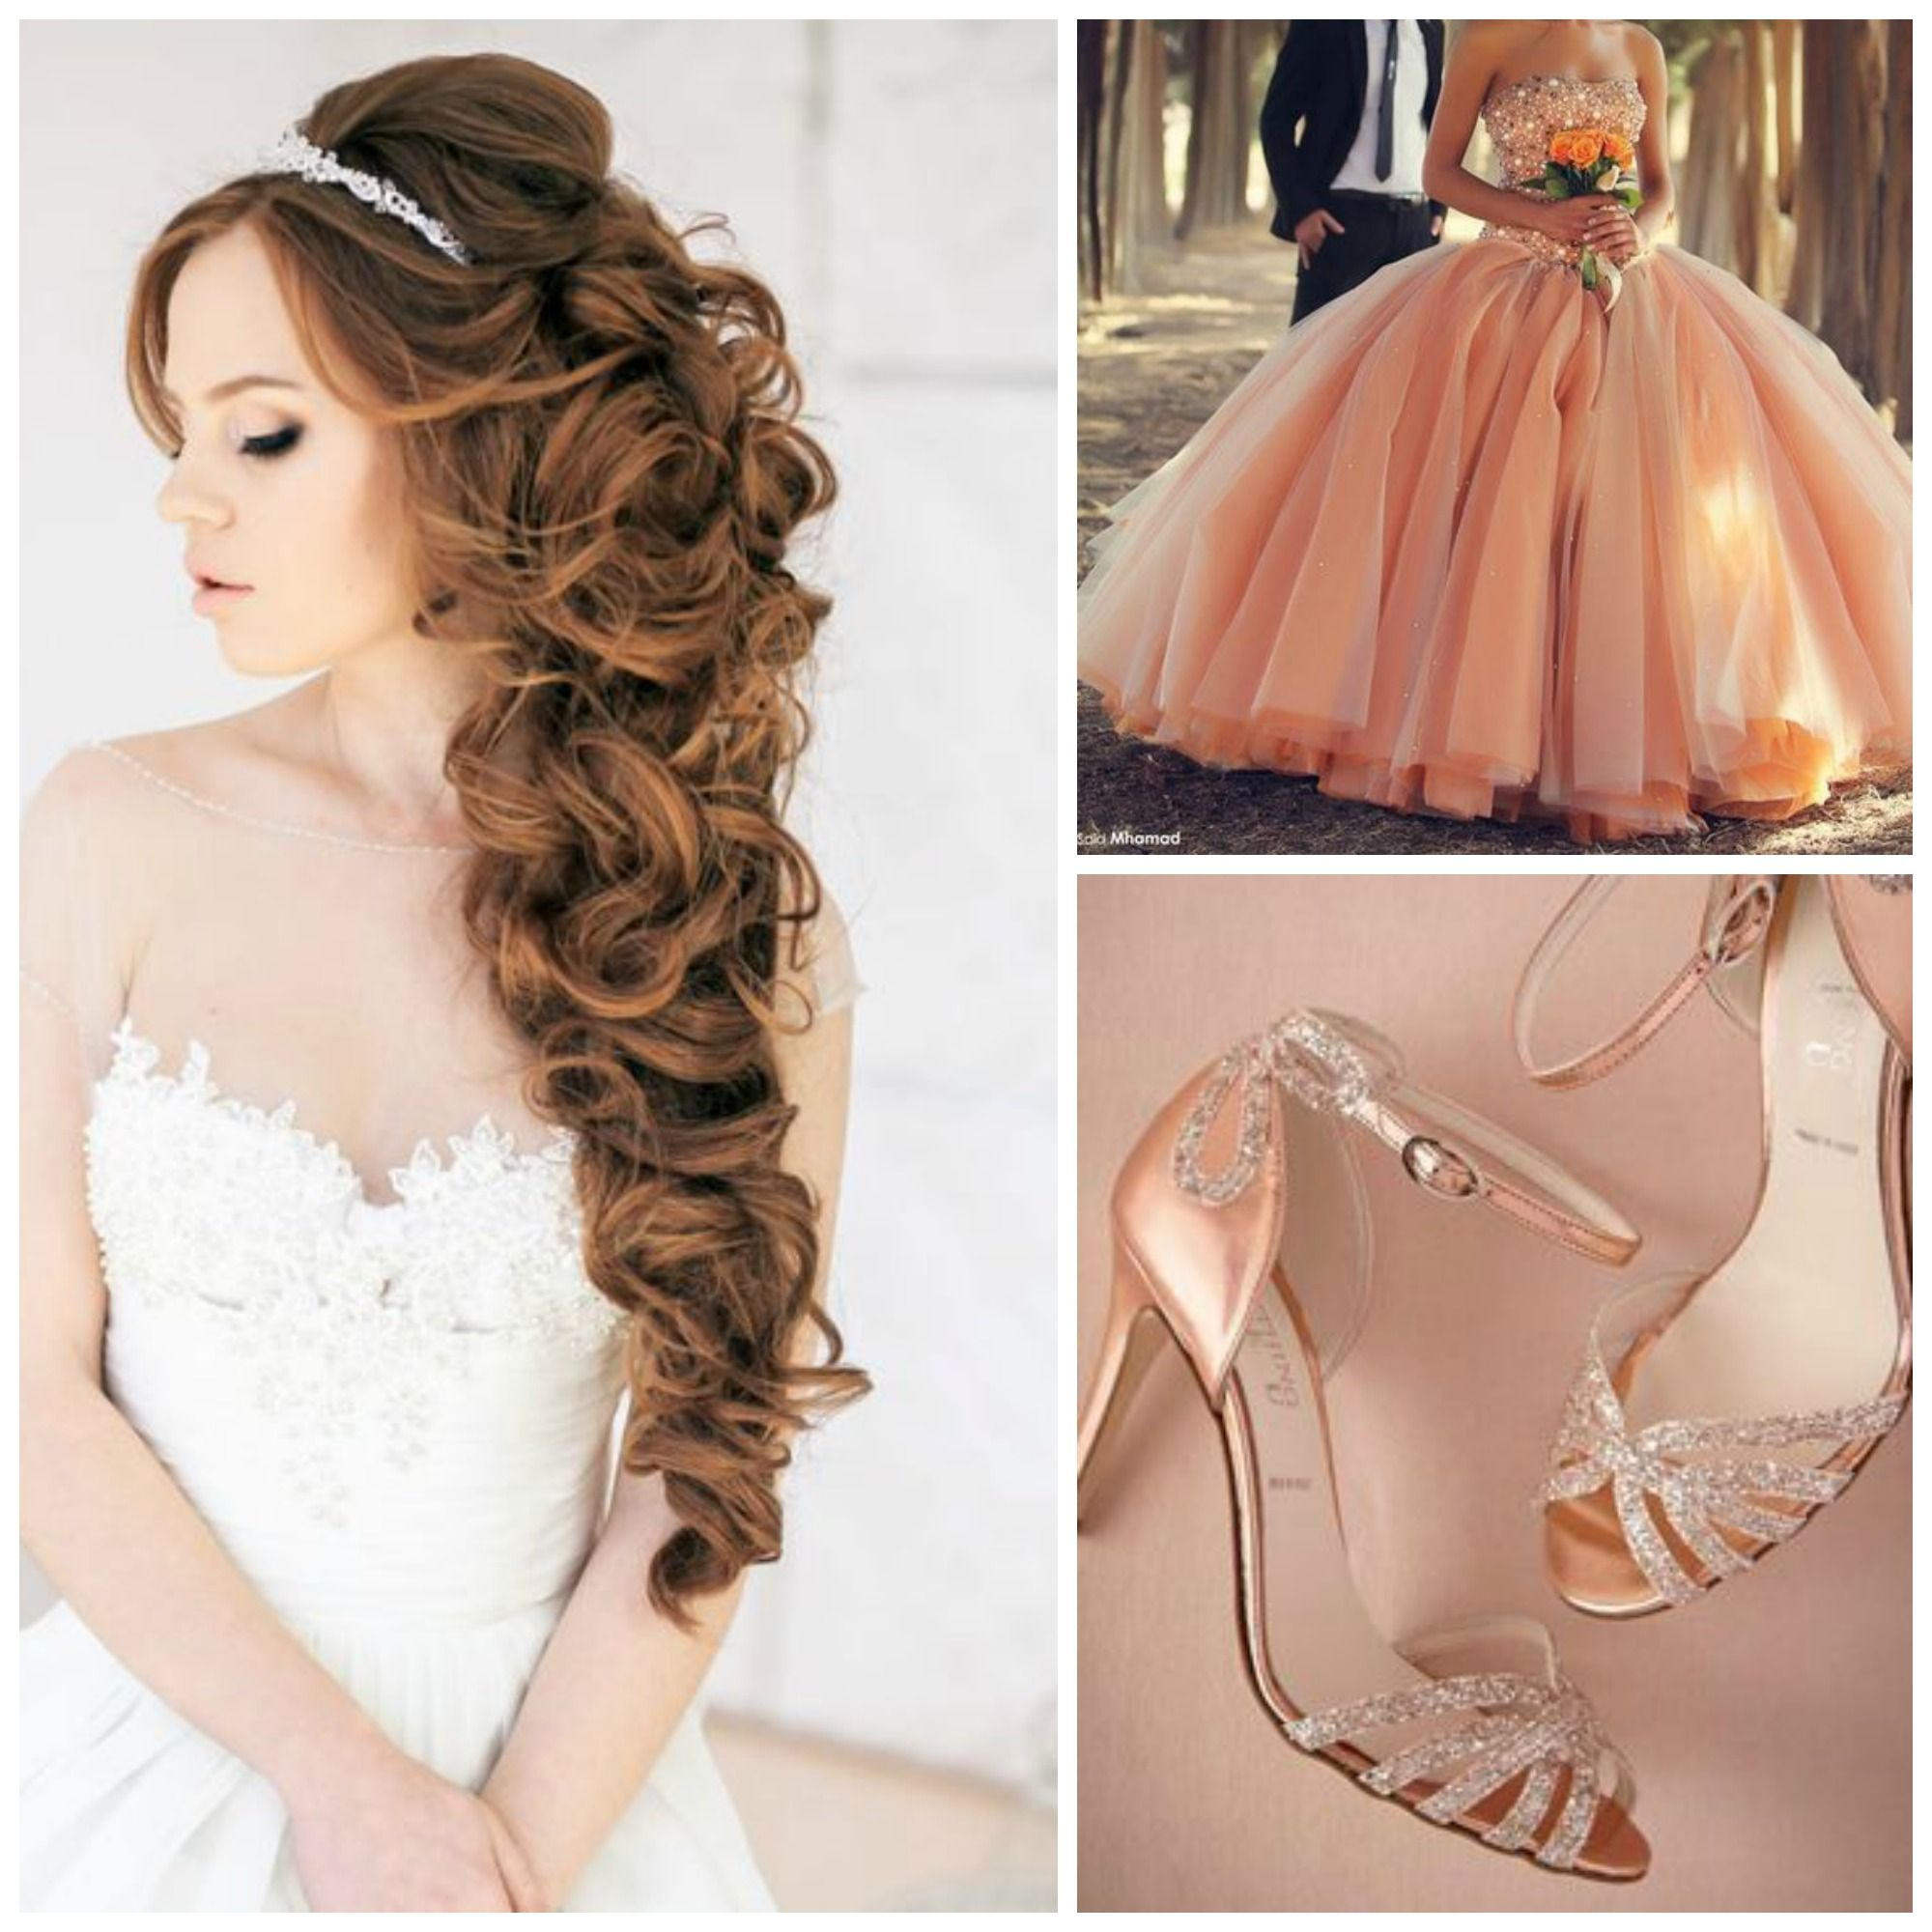 Hairstyles For A Quinceanera Quinceanera Hairstyle Quinceanera Pinterest Quinceanera